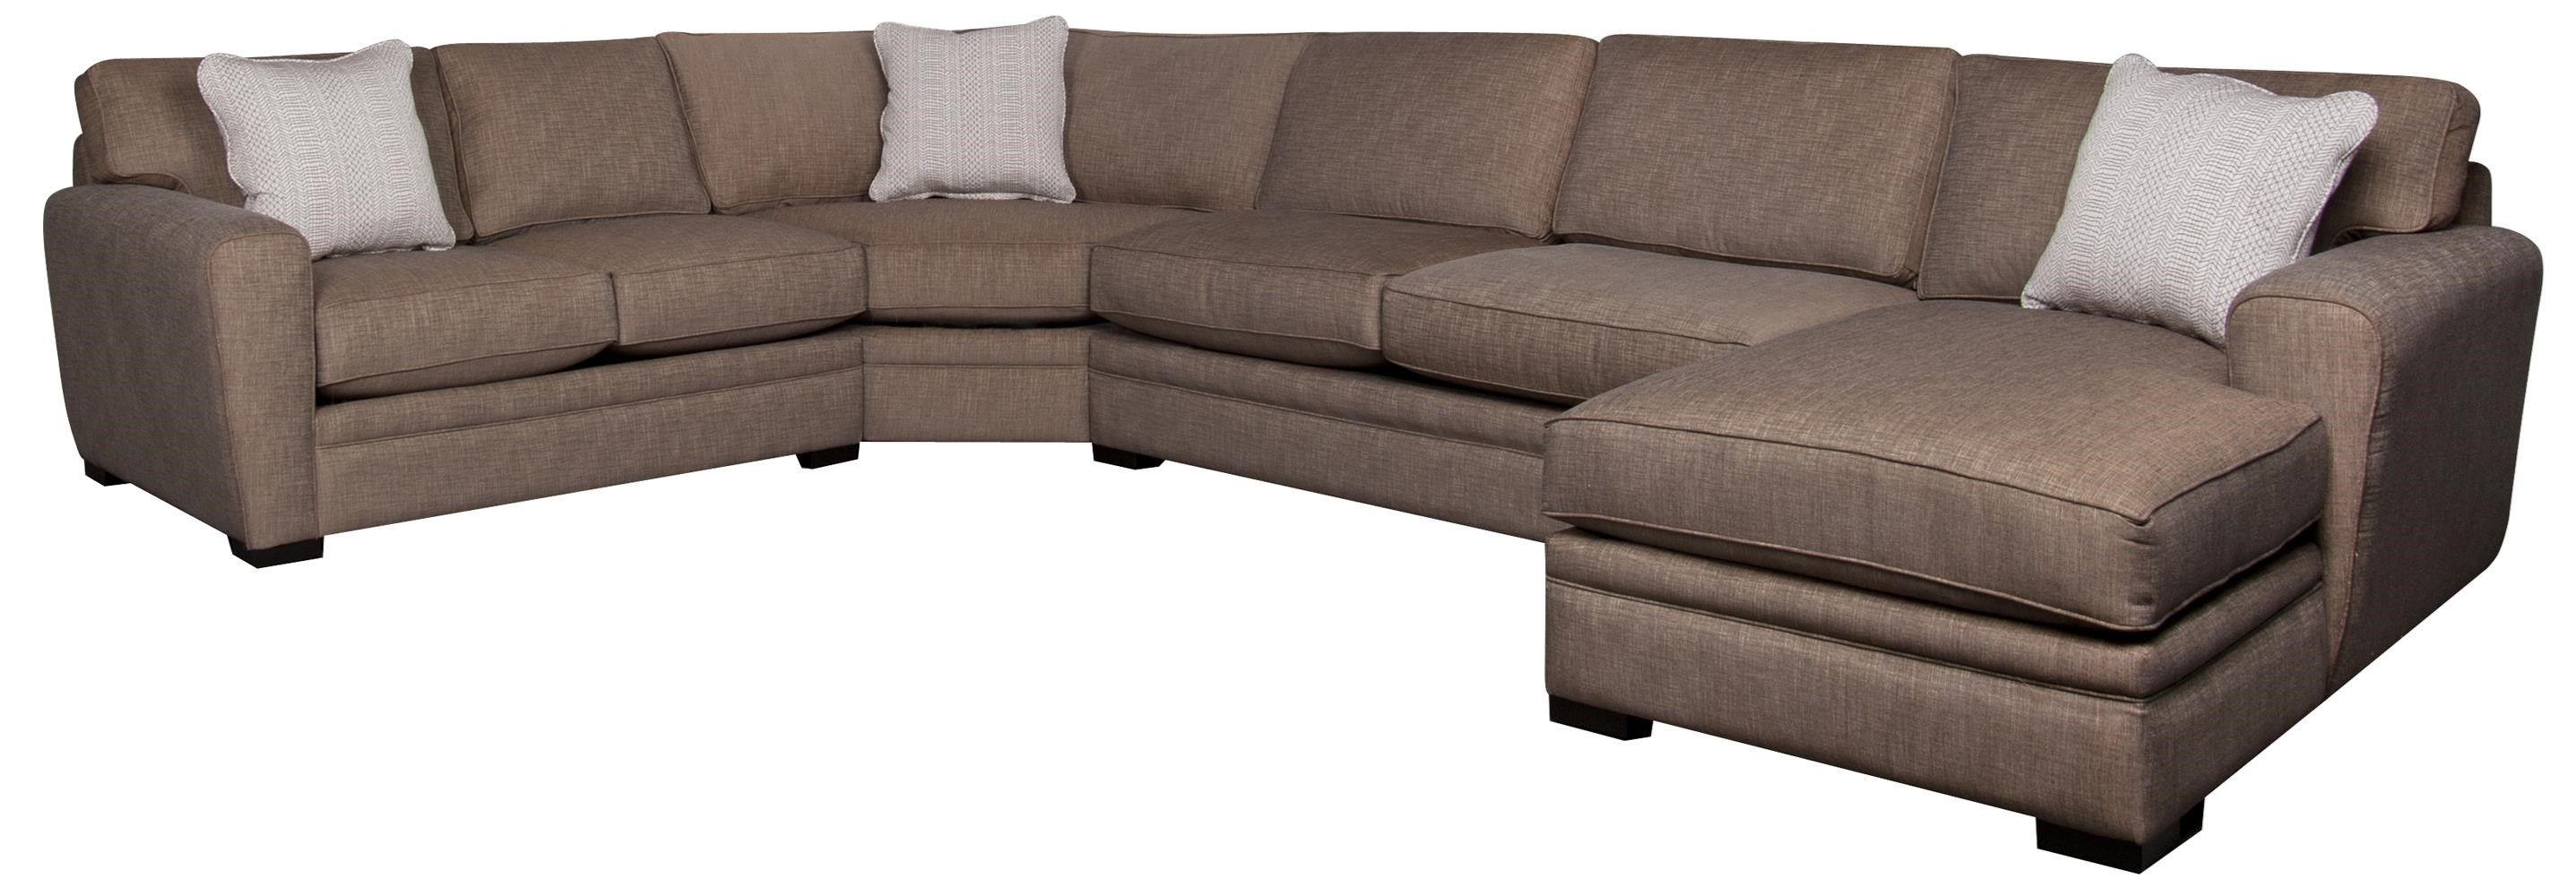 Lexie 4 Piece Sectional Morris Home Sectional Sofas